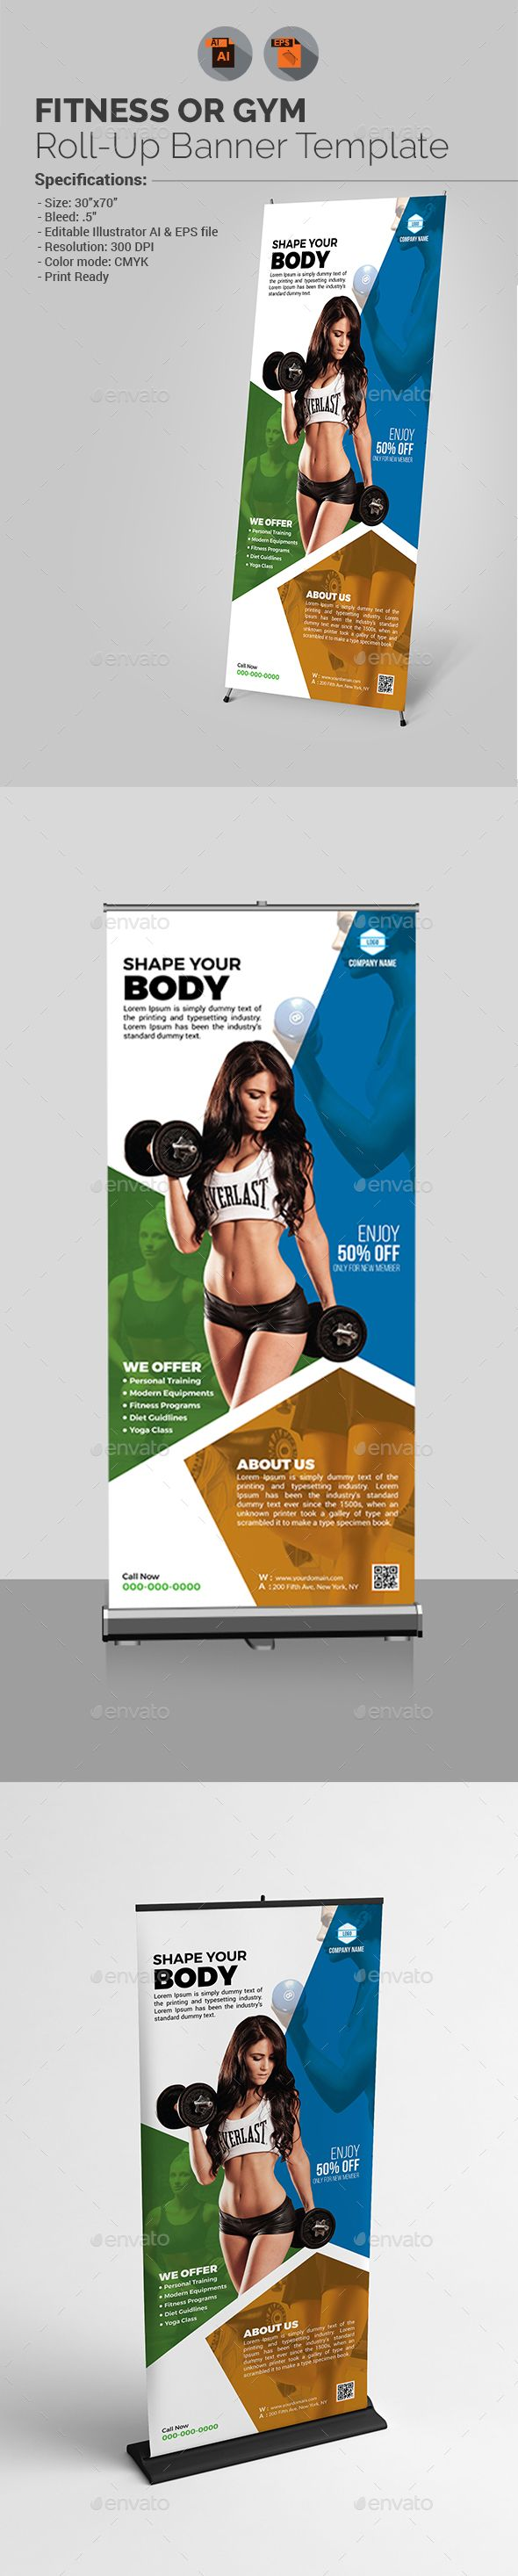 Fitness Roll-up Banner Template Vector EPS, AI Illustrator. Download here: http://graphicriver.net/item/fitness-rollup-banner/15954791?ref=ksioks